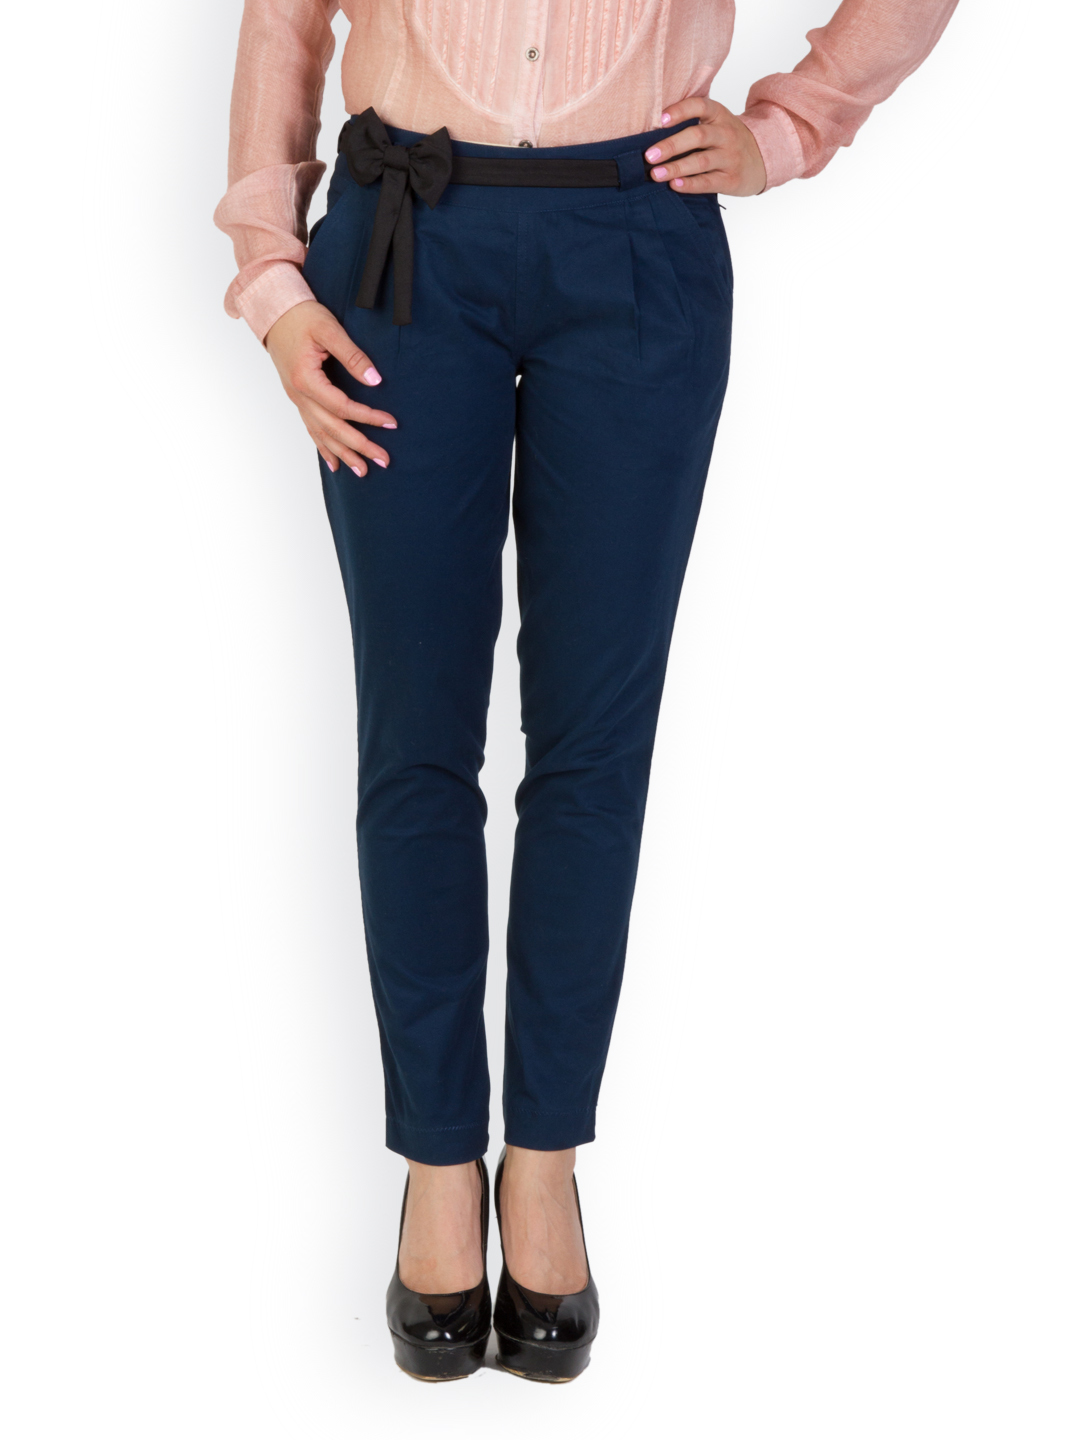 Rider Republic Women's Blue Flat Front Stretch Pant